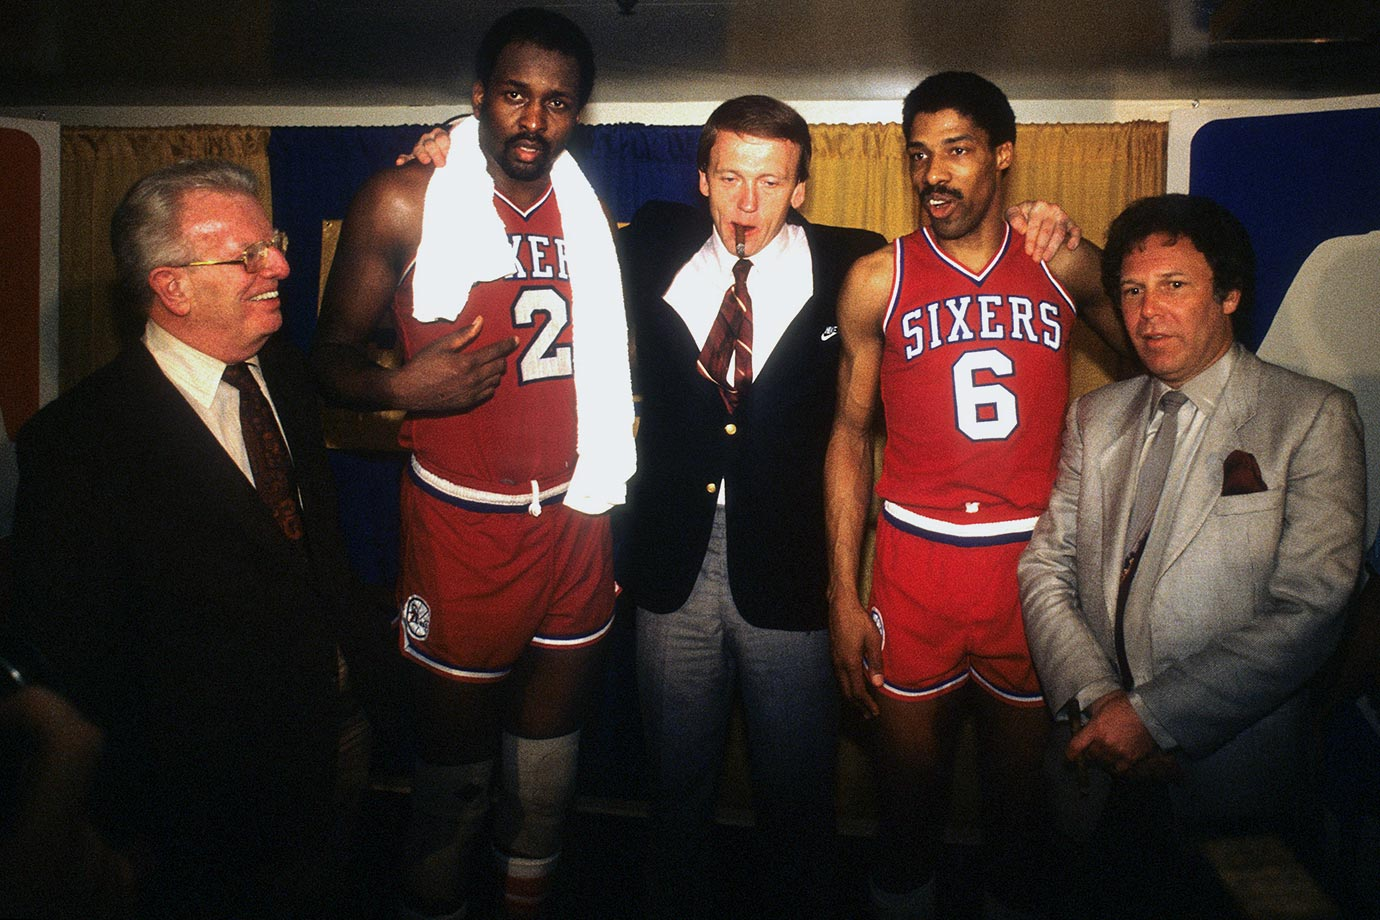 Moses Malone and Dr. J pose with 76ers coach Billy Cunningham, alongside NBA commissioner Larry O'Brien (left) and Sixers owner Harold Katz (right) in the locker room after sweeping the Los Angeles Lakers in the 1983 NBA Finals.